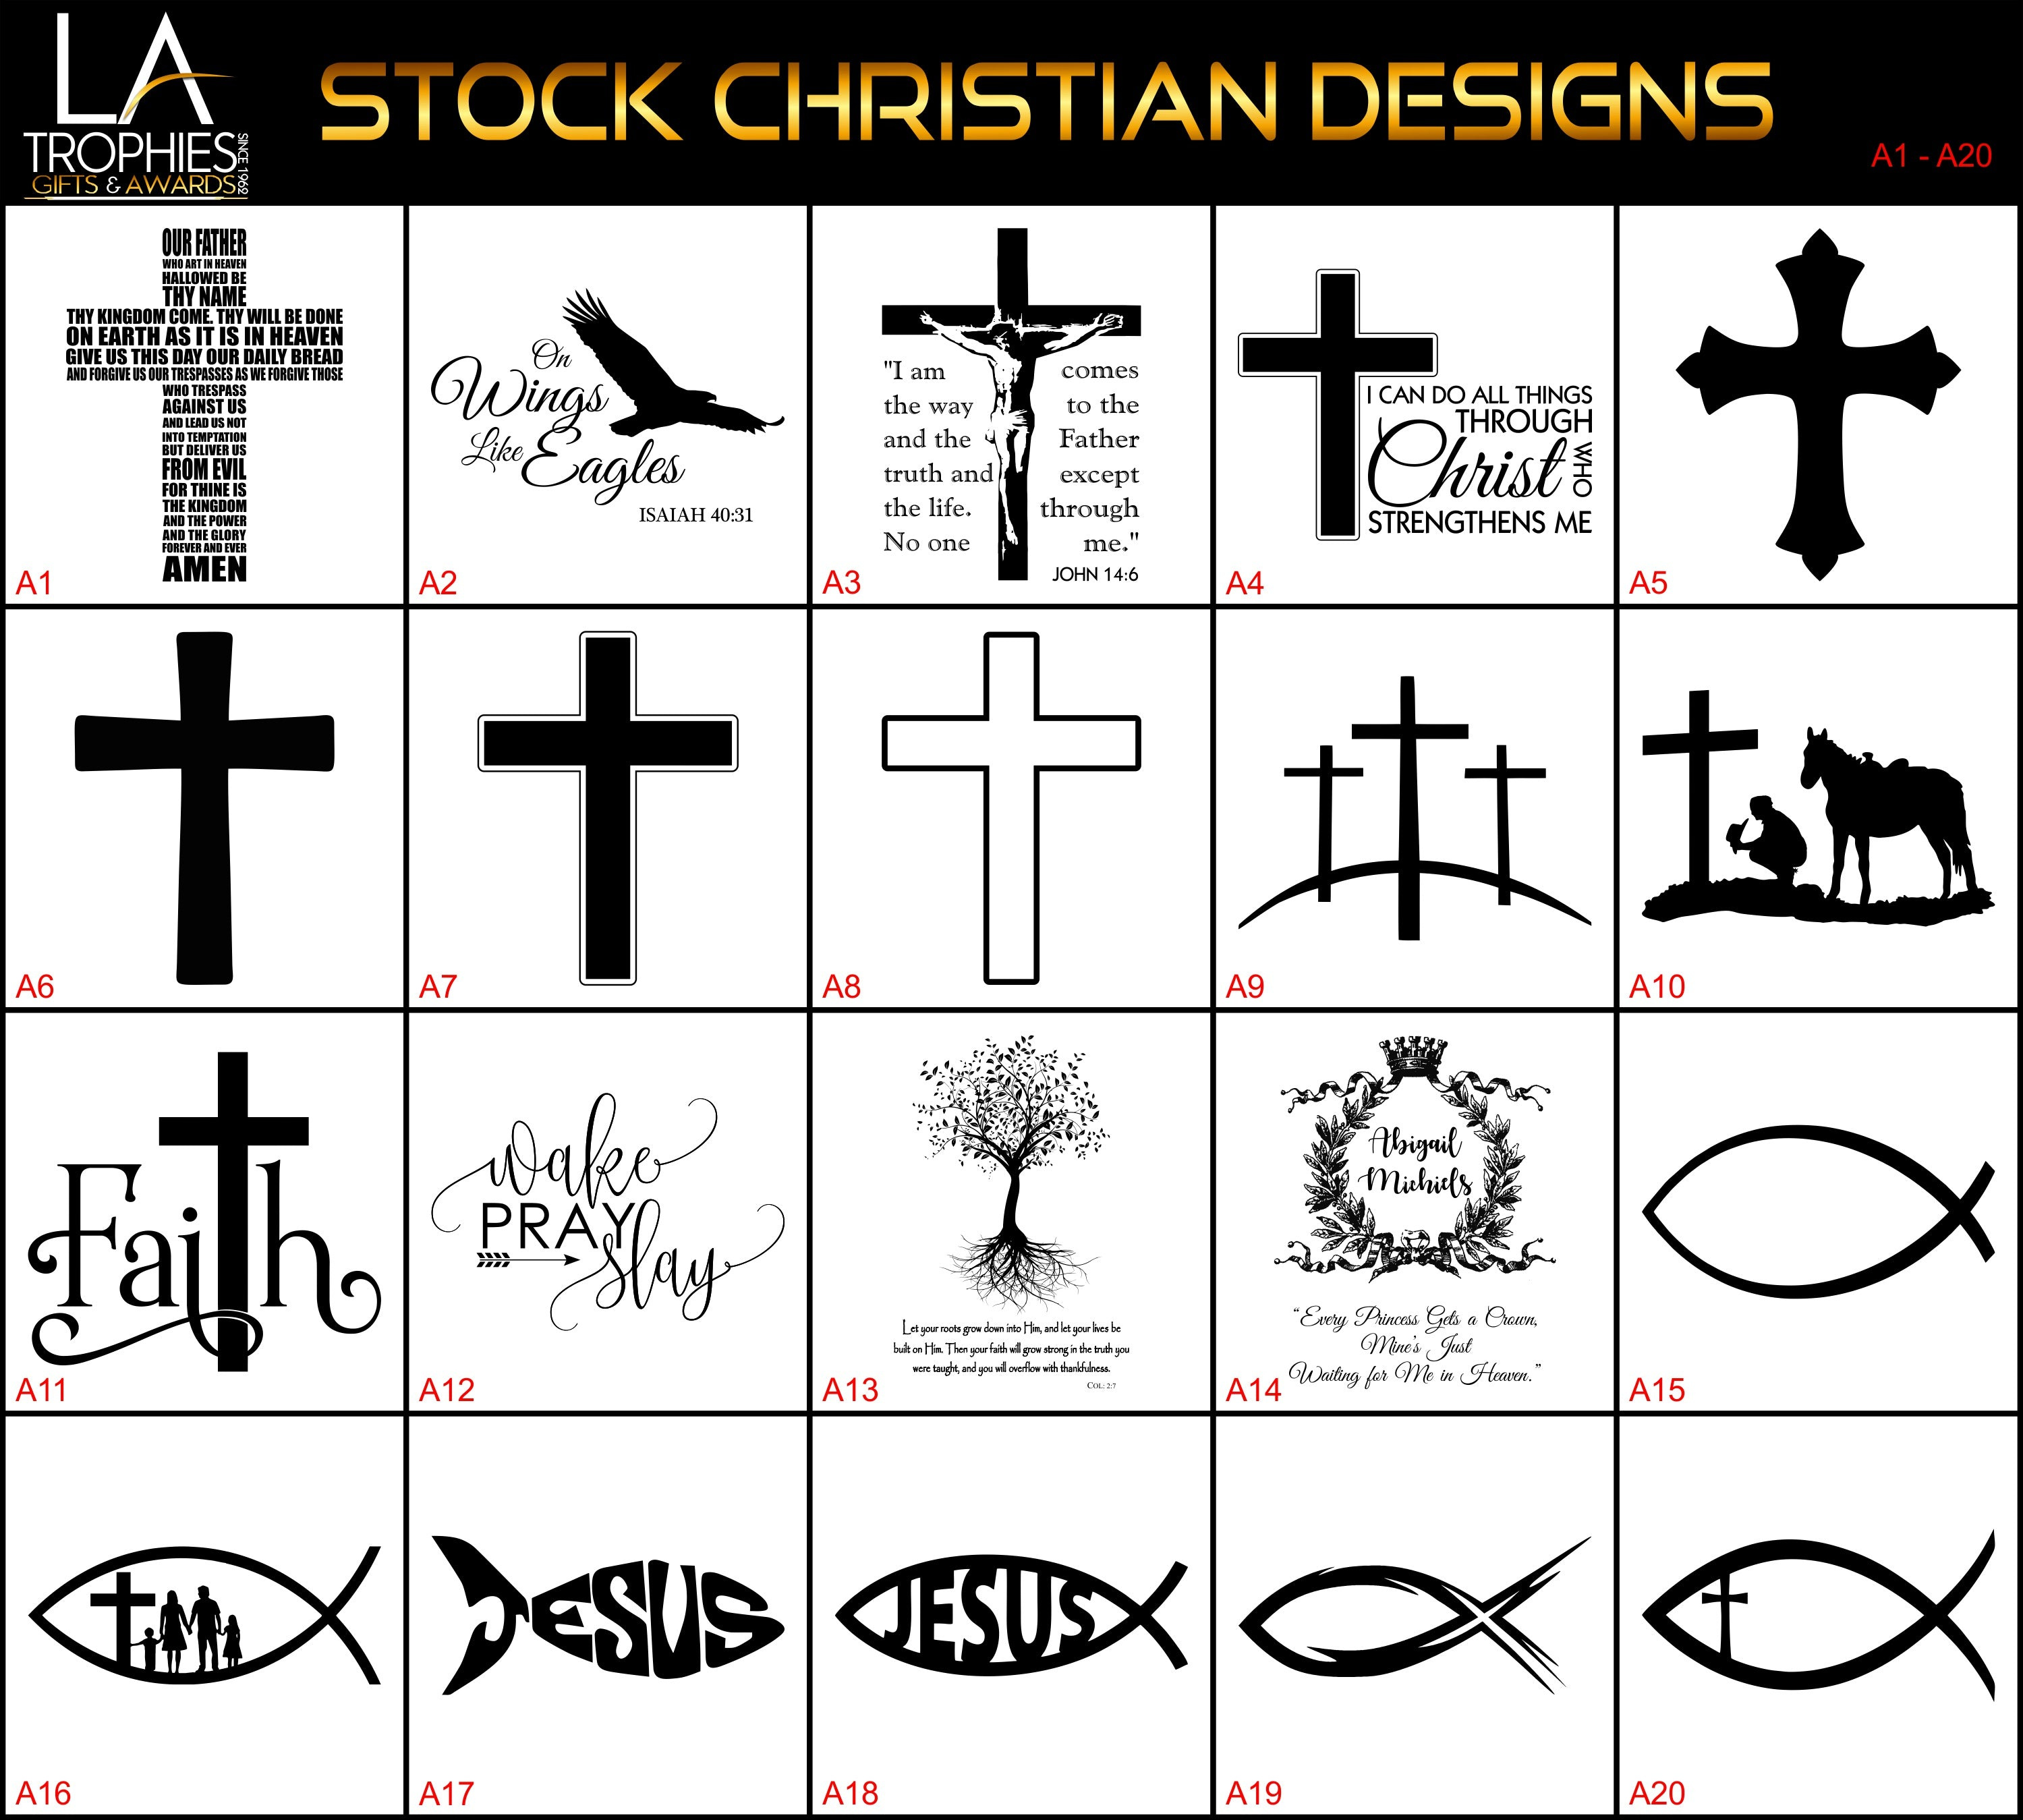 A1-A20 - Stock Christian Designs LA Trophies